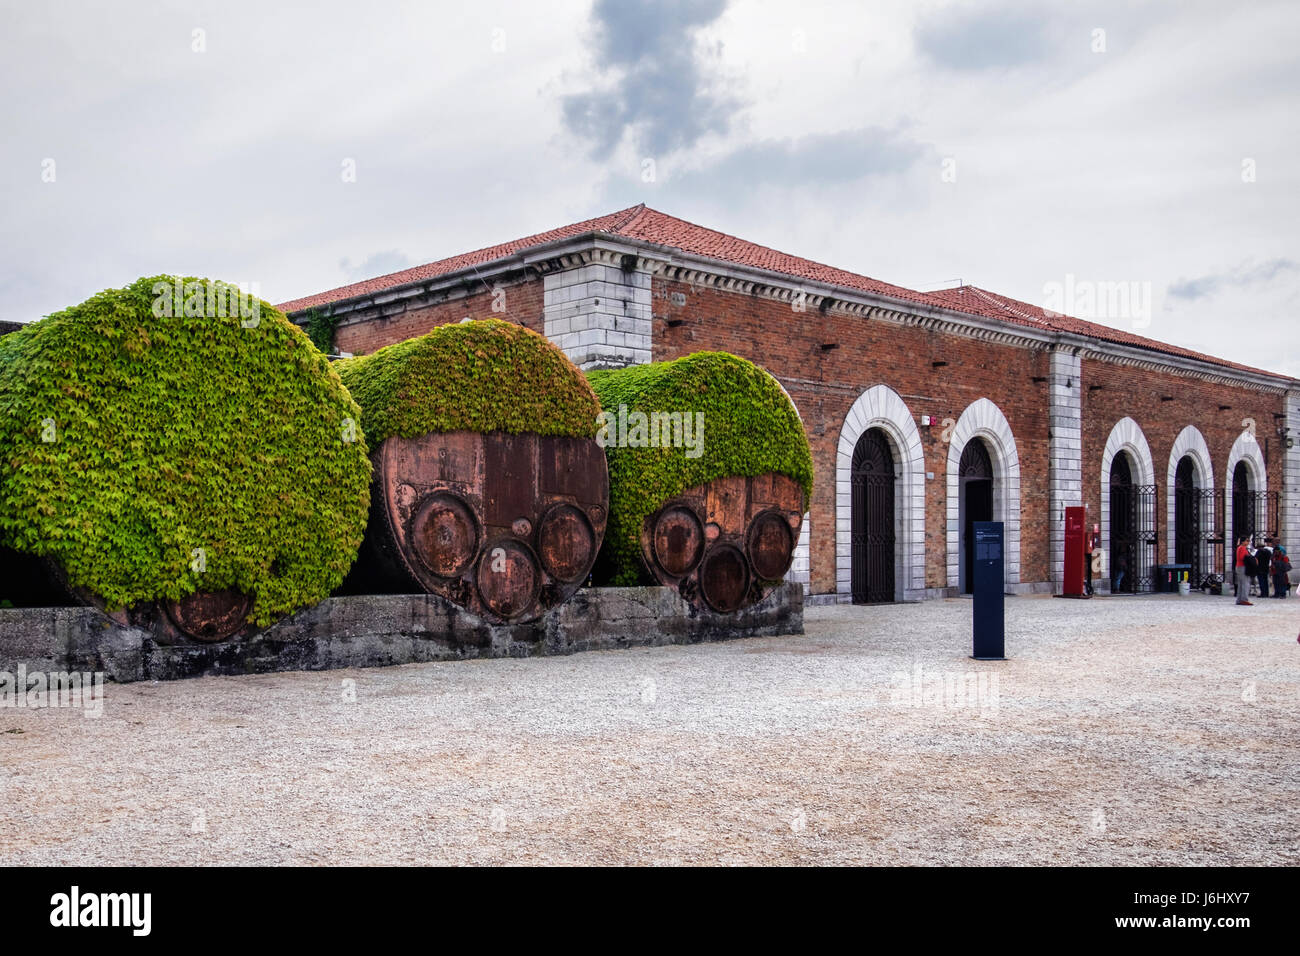 Venice, Castello, Arsenale harbour. Industrial rusty old iron barrel containers  covered in ivy next to historic - Stock Image